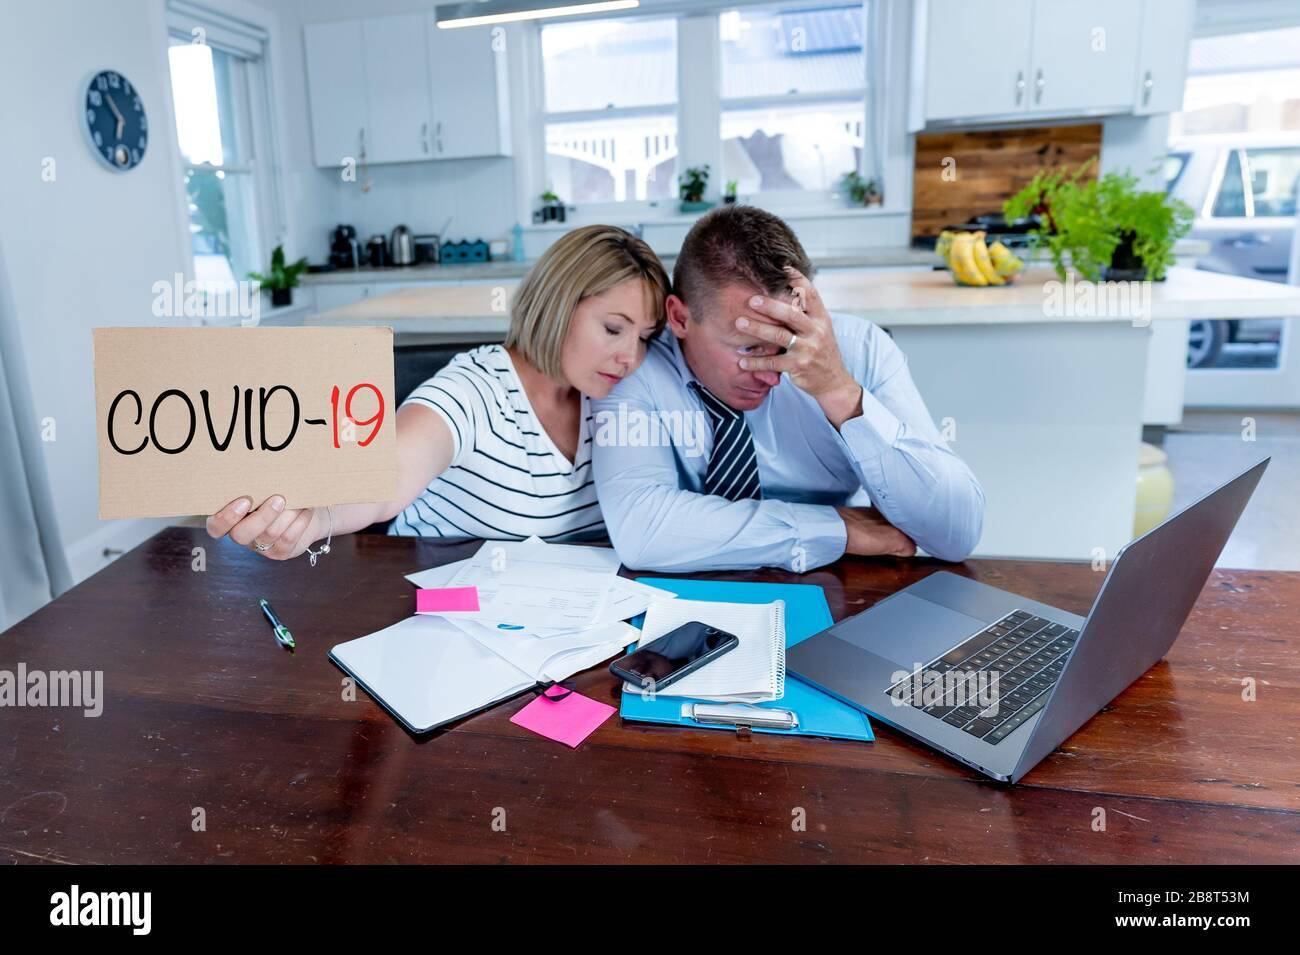 Coronavirus economic recession. Family couple in distress of job losses worried about bills, credit debts, loans and home finances. Impact of COVID-19 Stock Photo